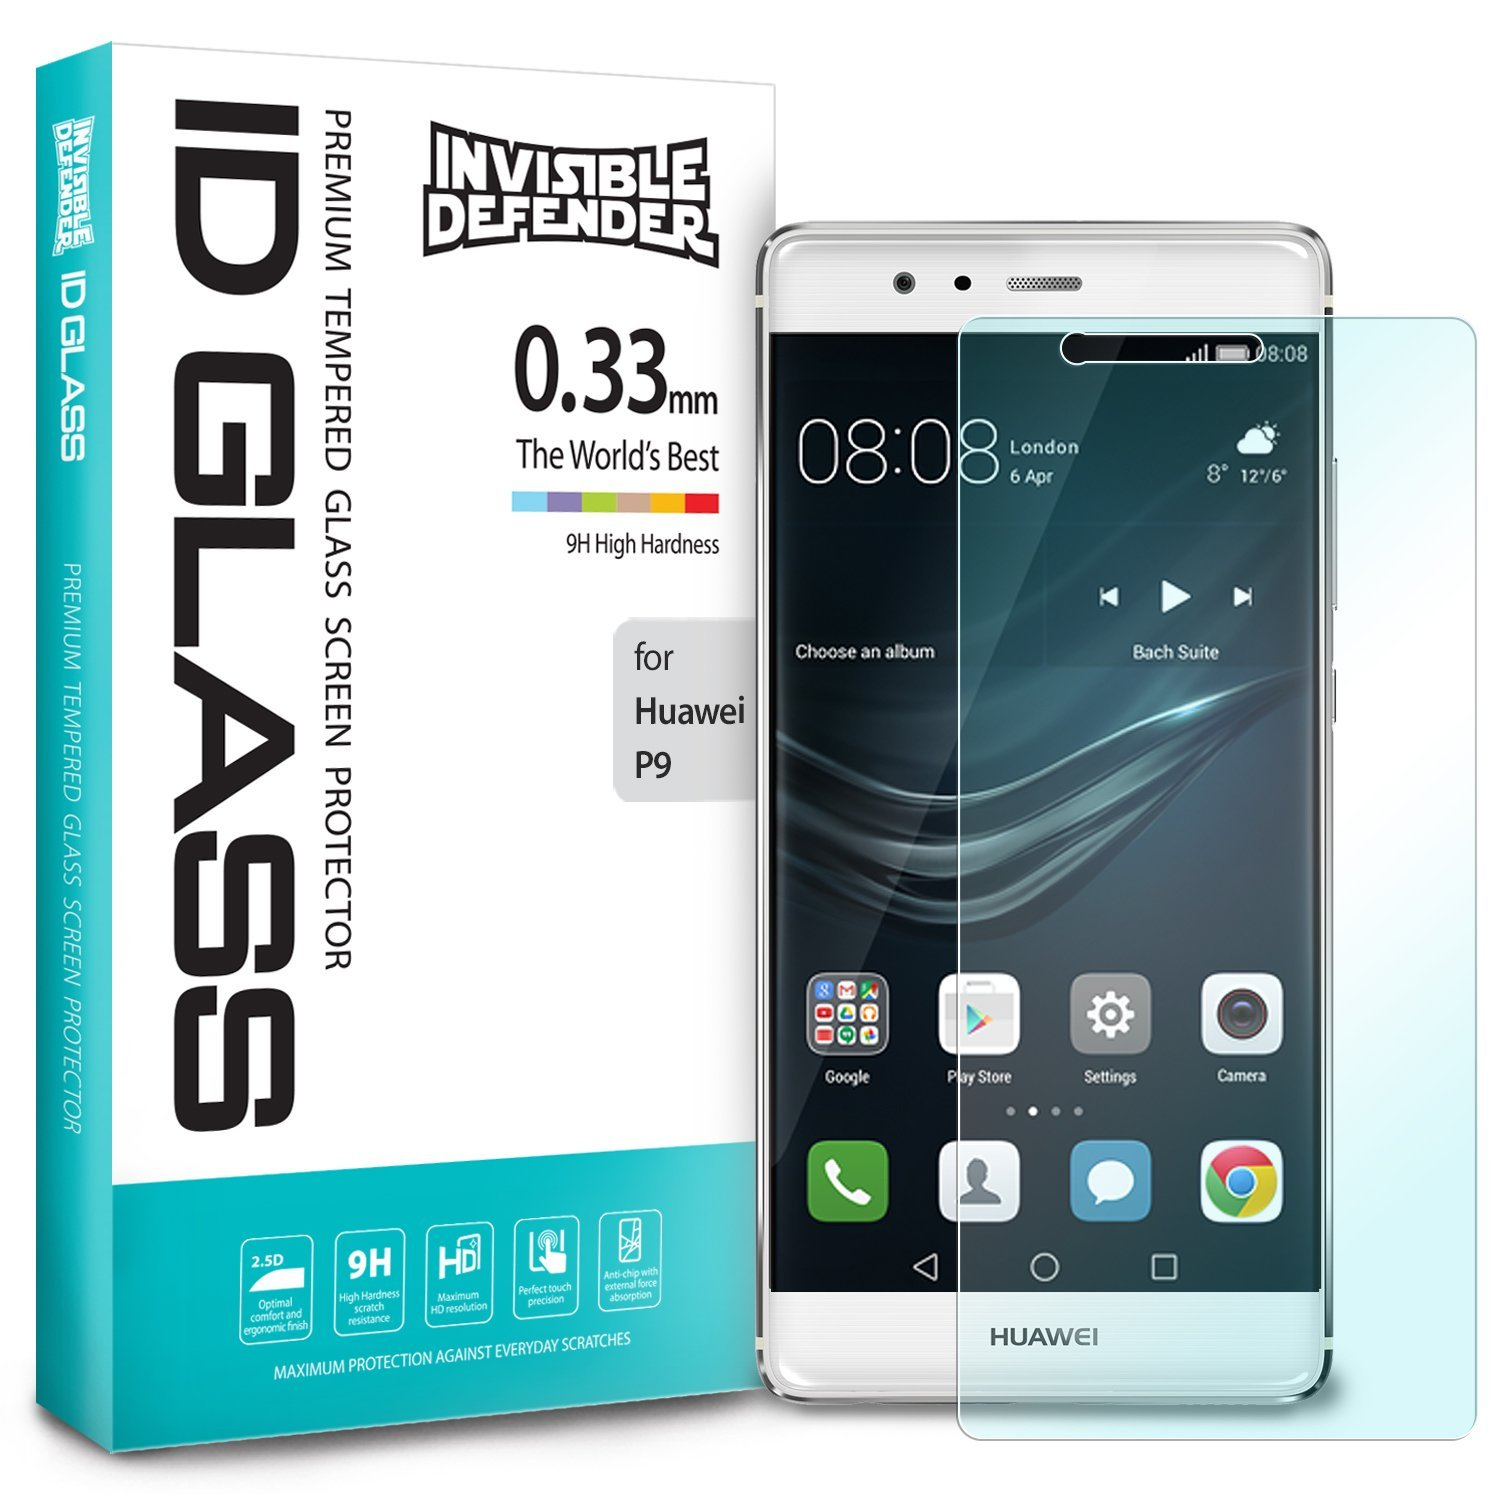 Ringke Huawei P9 Screen Protector Invisible Defender Glass 0.33